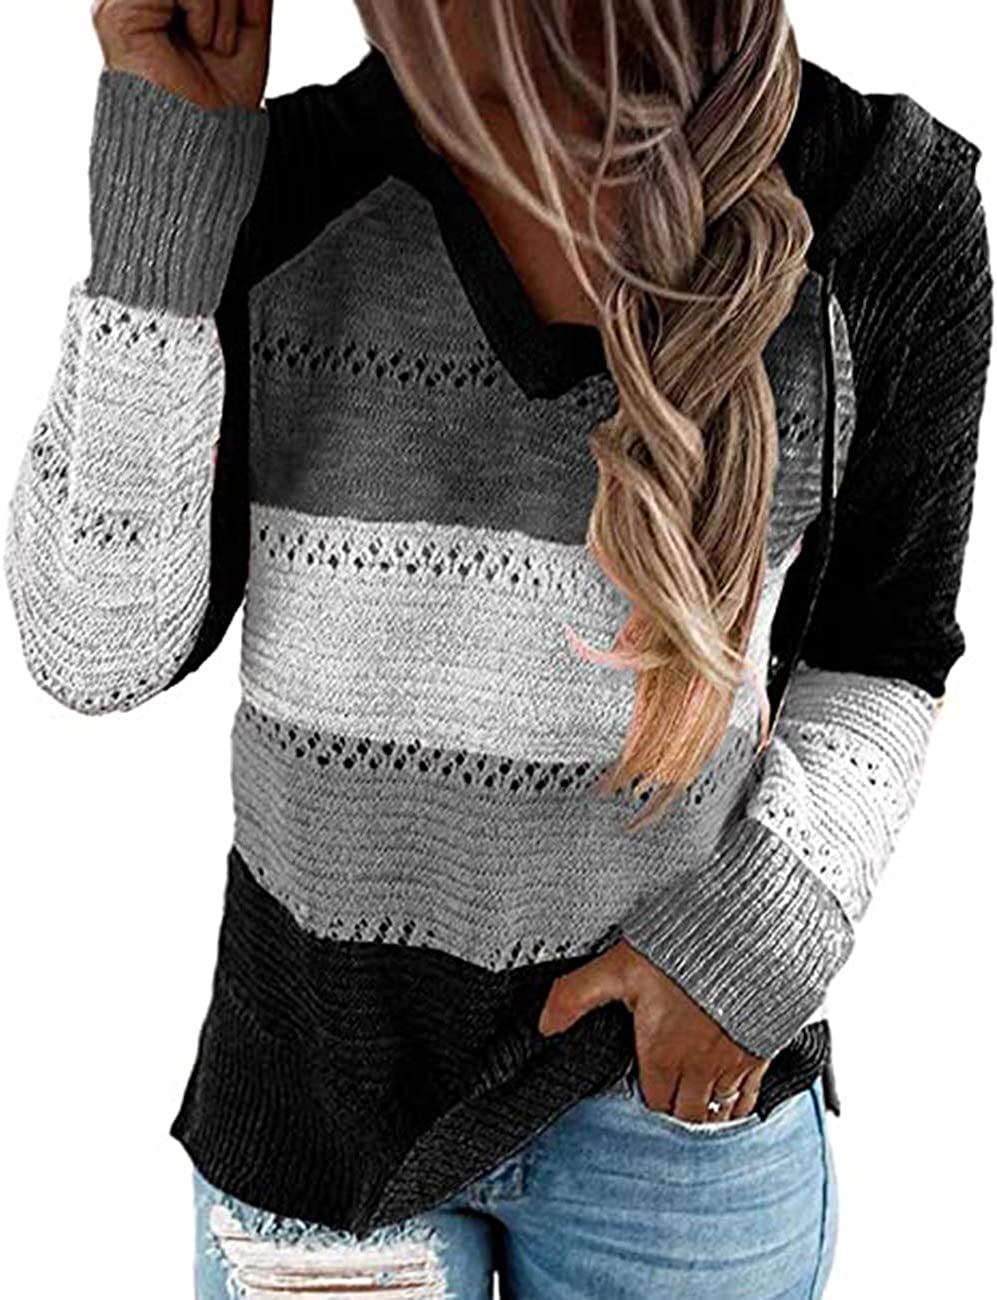 Eoeth Womens Hollow Out Long Sleeve Splice Blouse Fashion Ladies Comfortable Slim Fit T-Shirt Tops Shirts Pullover